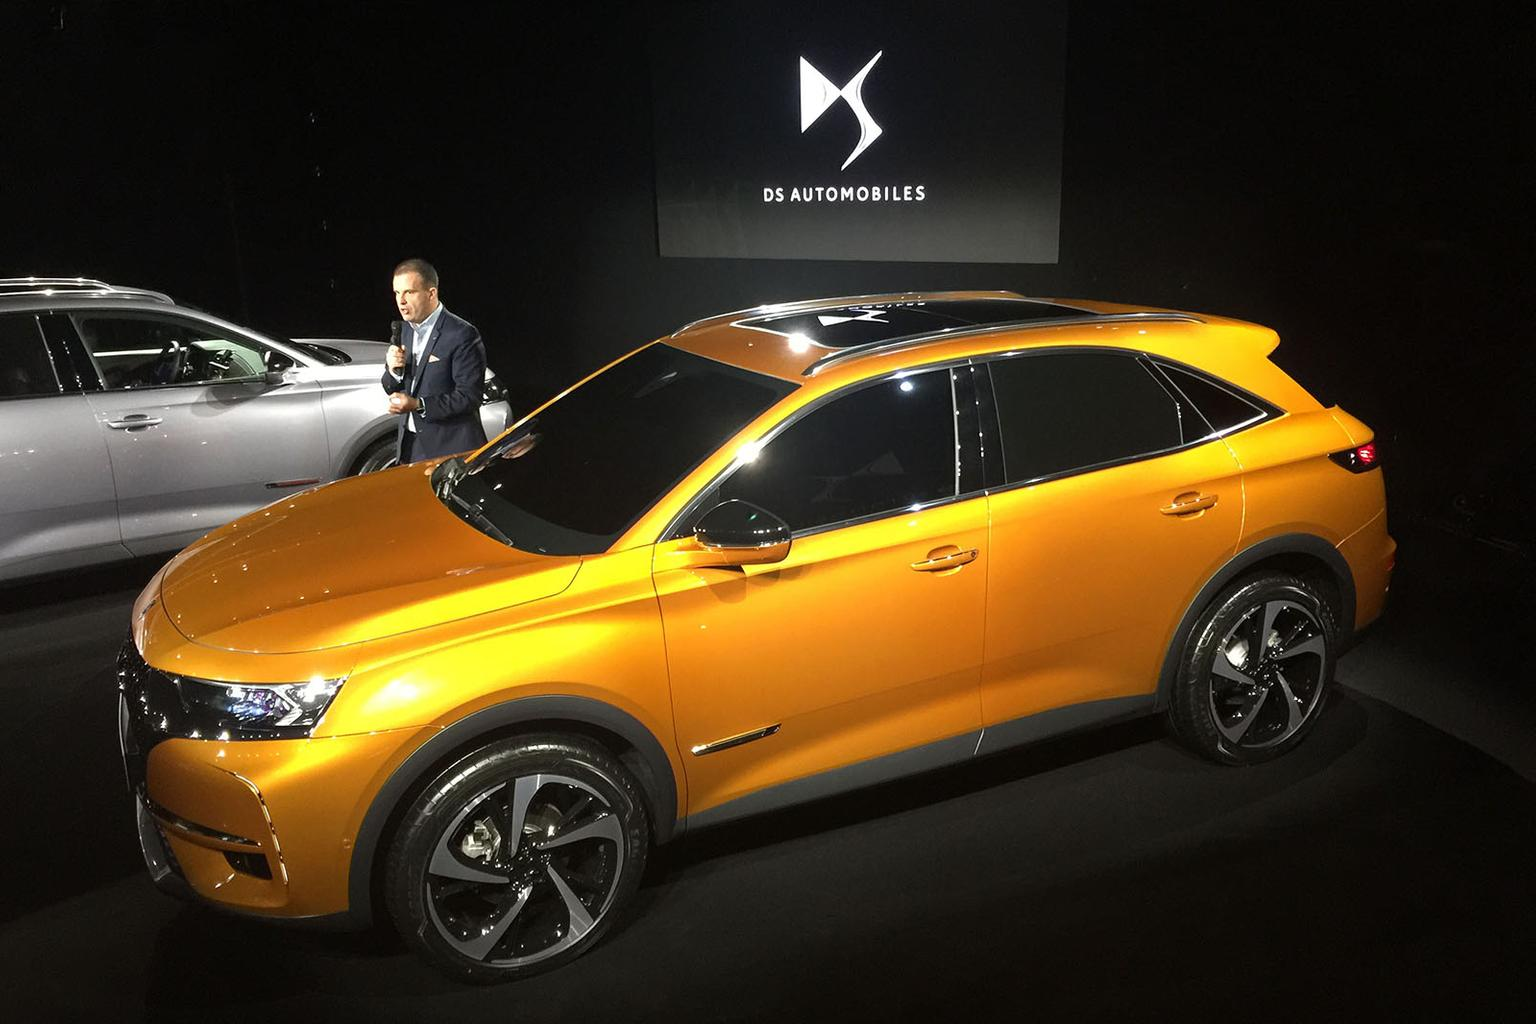 DS 7 Crossback revealed ahead of Geneva motor show